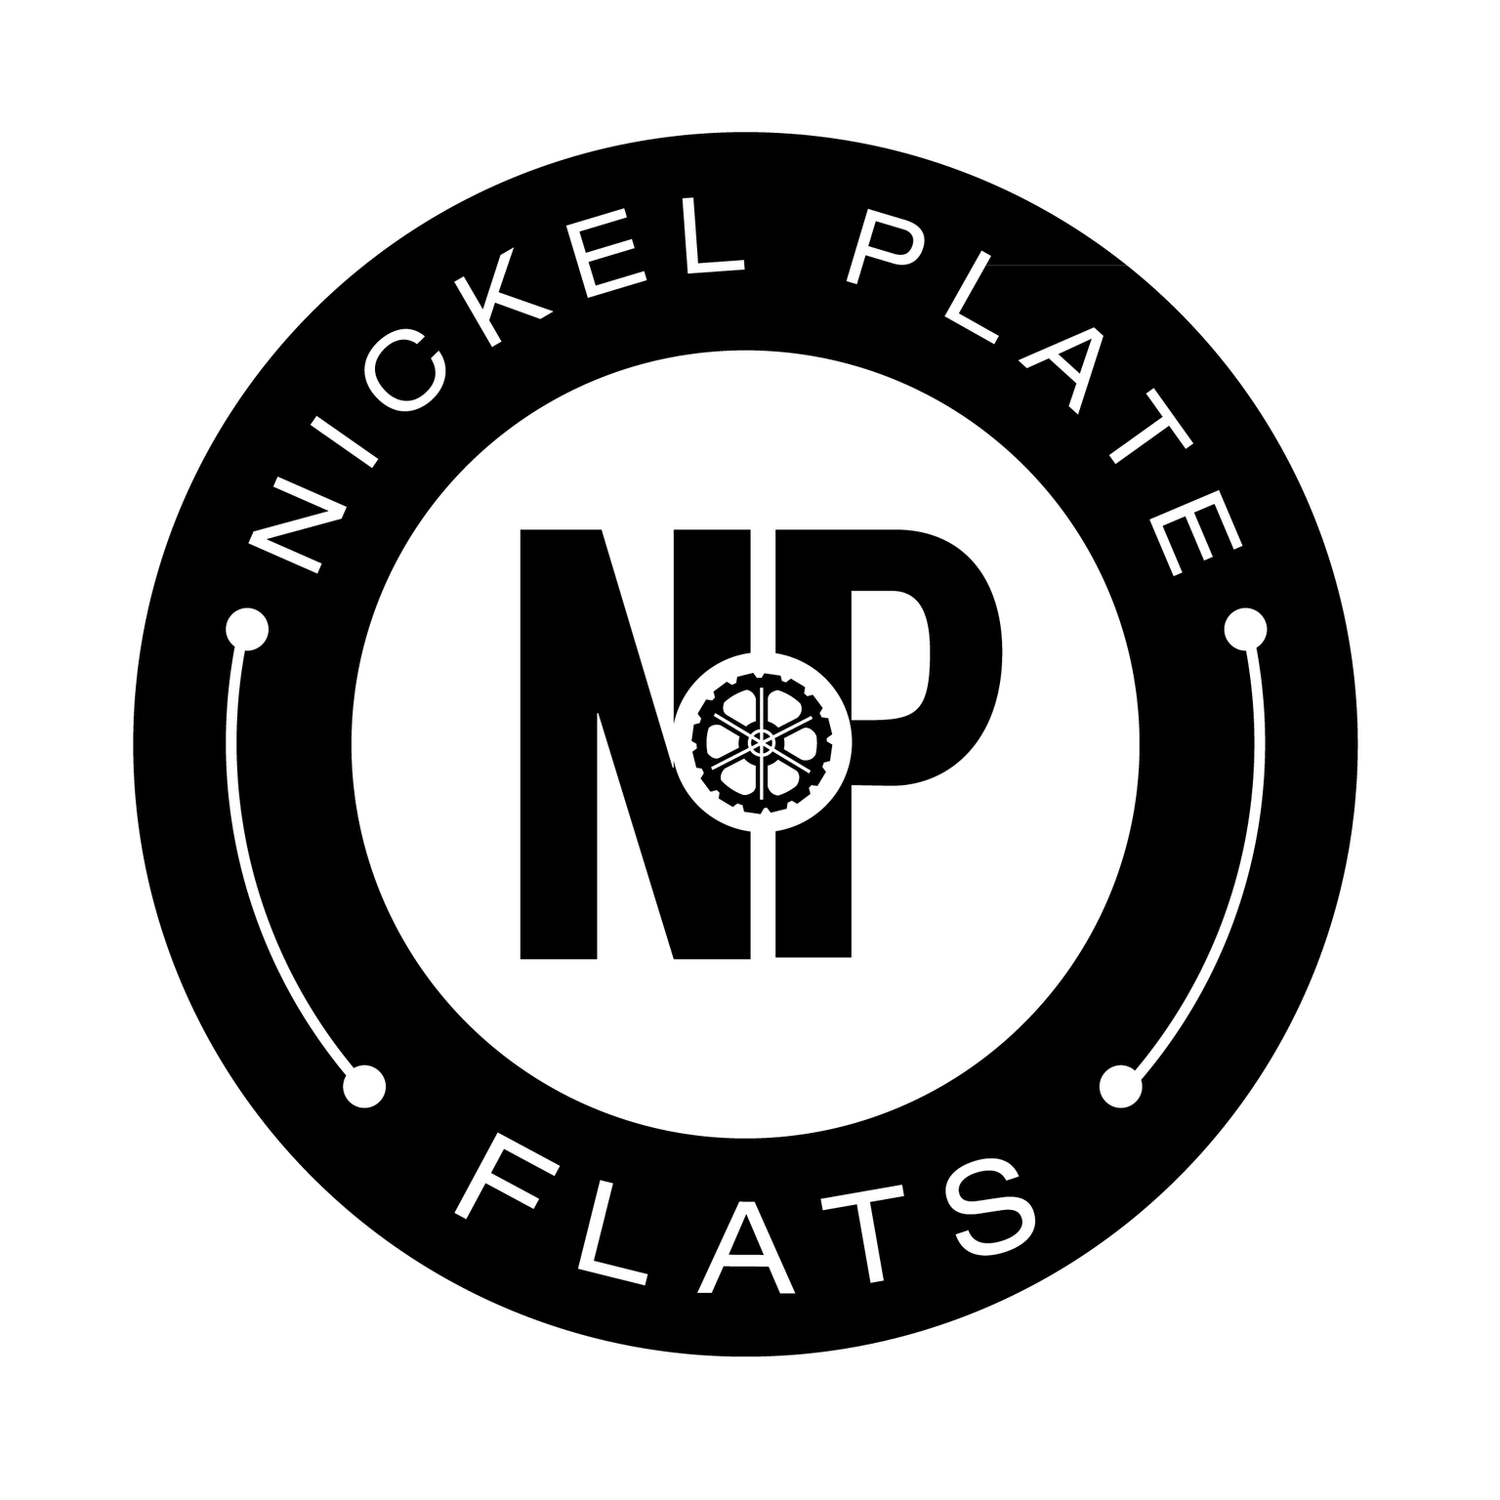 Nickel Plate Flats